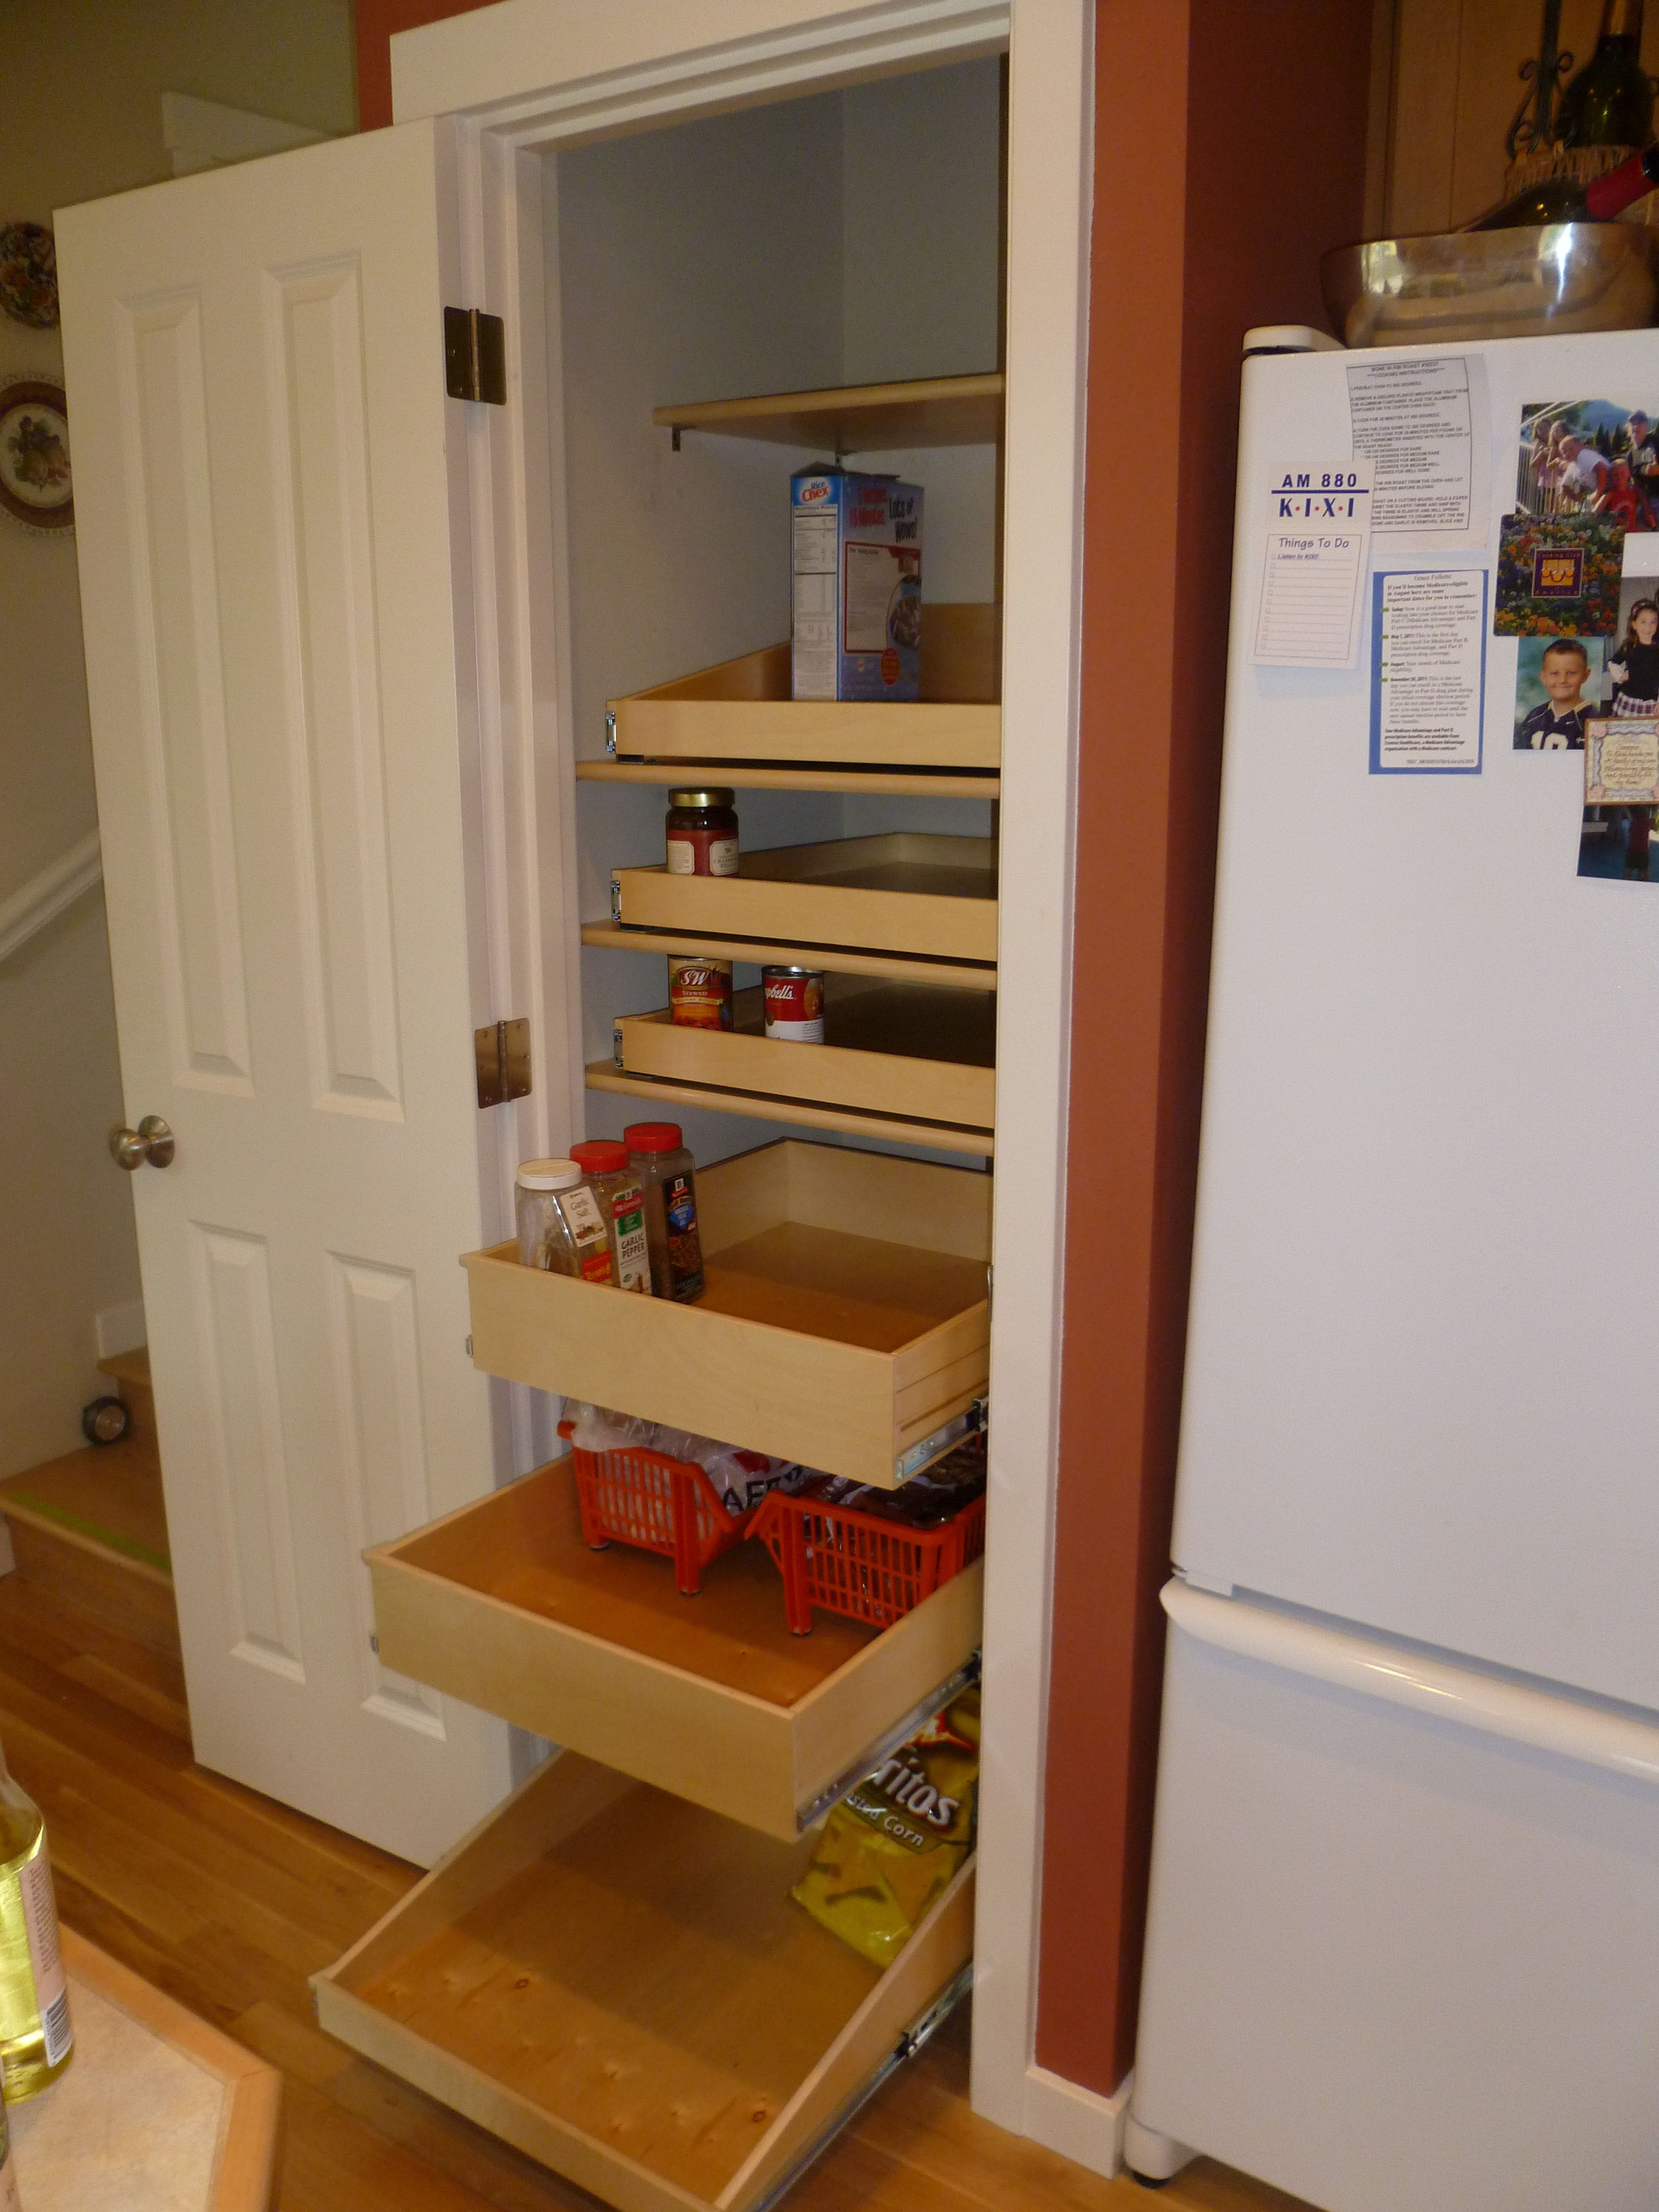 Pull Out Shelves For Pantry Closet Kitchen Cabinet Design Interior Pantry Shelving